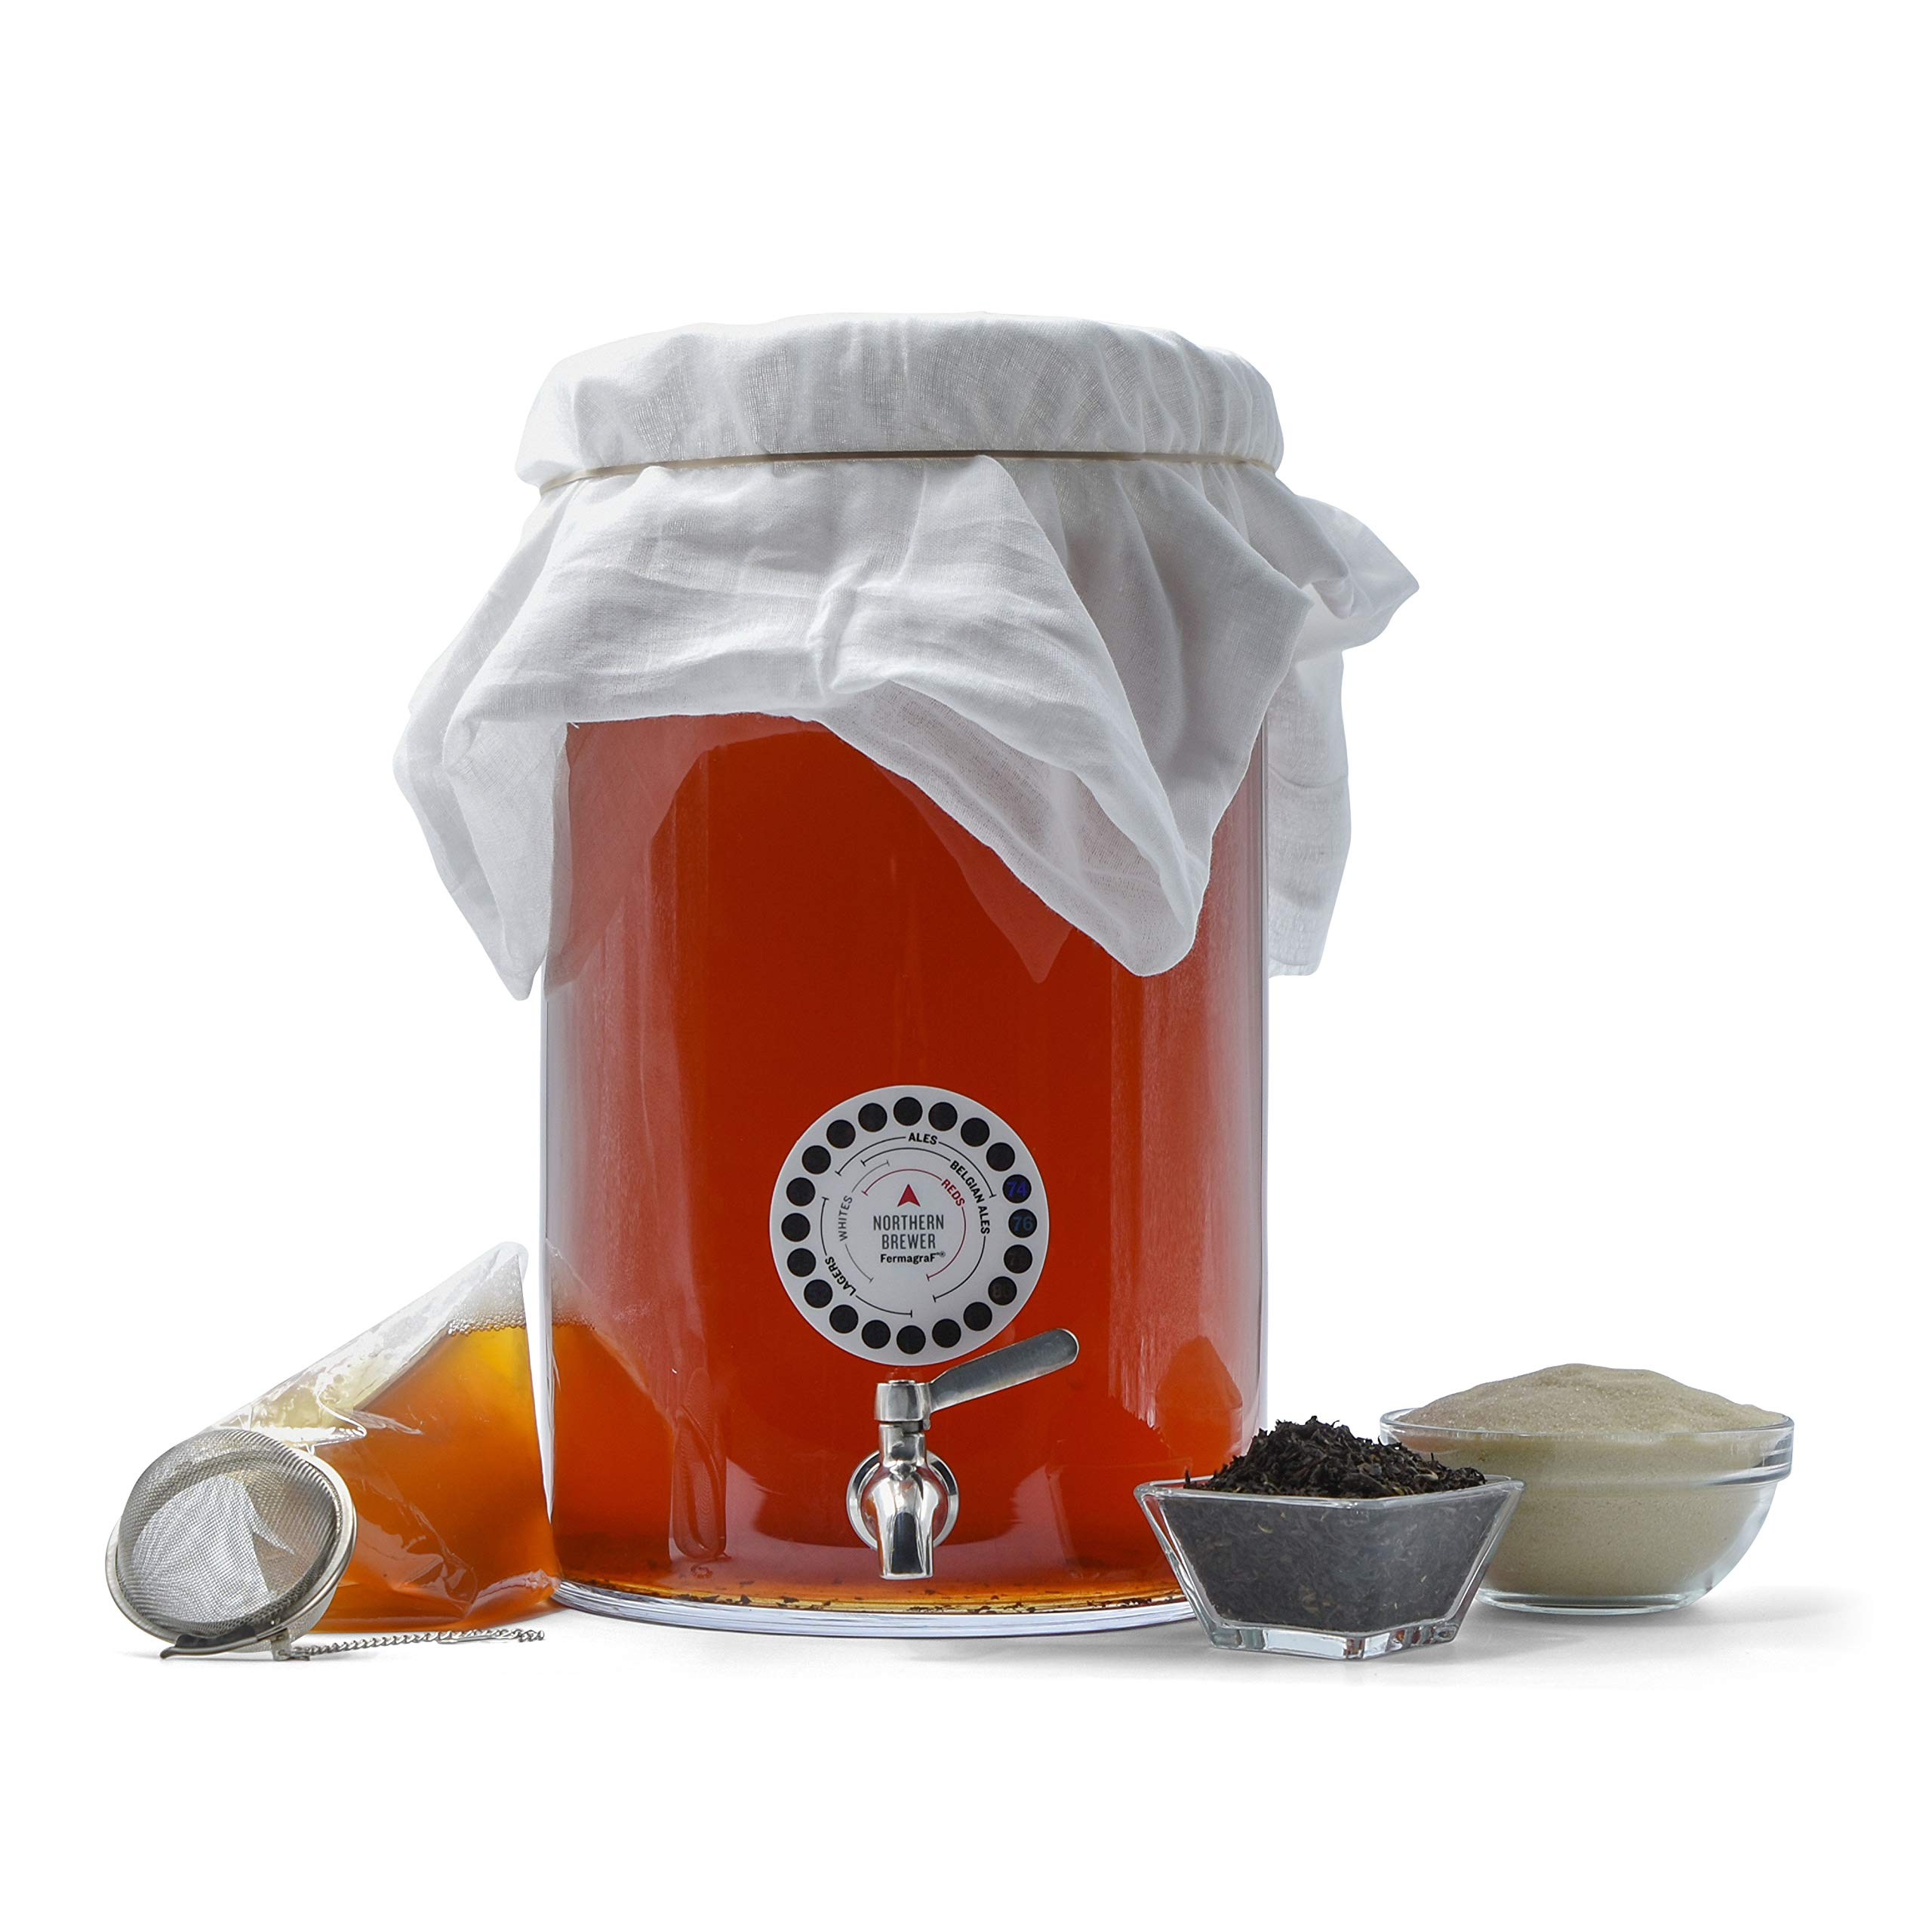 Northern Brewer- Kombucha Brewing Starter Kit With Scoby & Glass Fermenter Jar Equipment For Making Kombucha Continuous Batches At Home (3 Gallon)